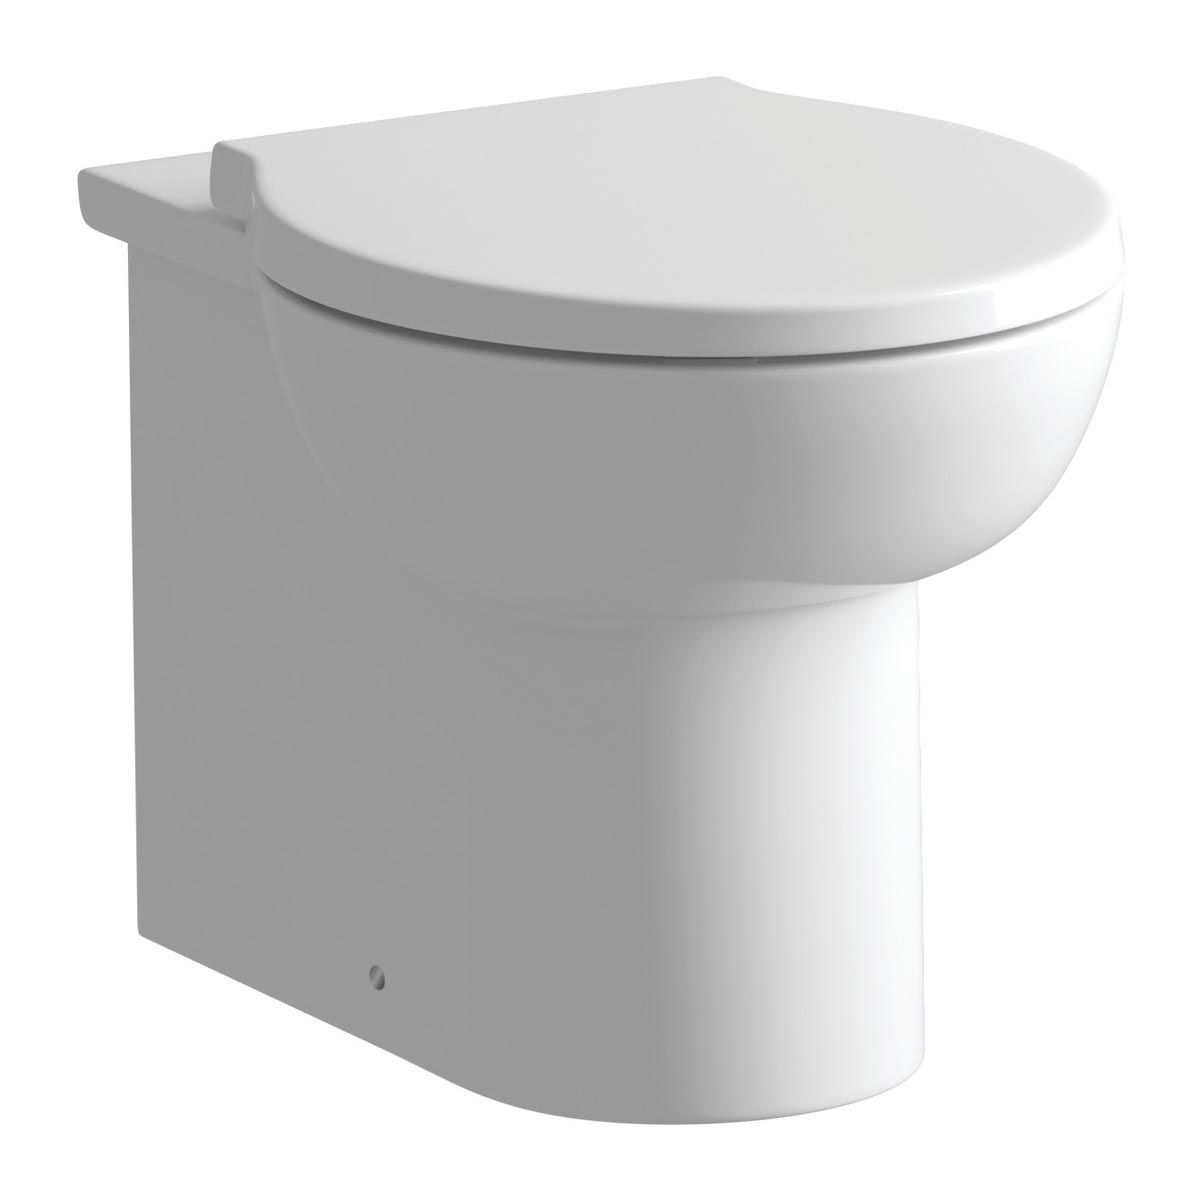 BTL Mimosa Back To Wall Toilet with Soft Close Seat